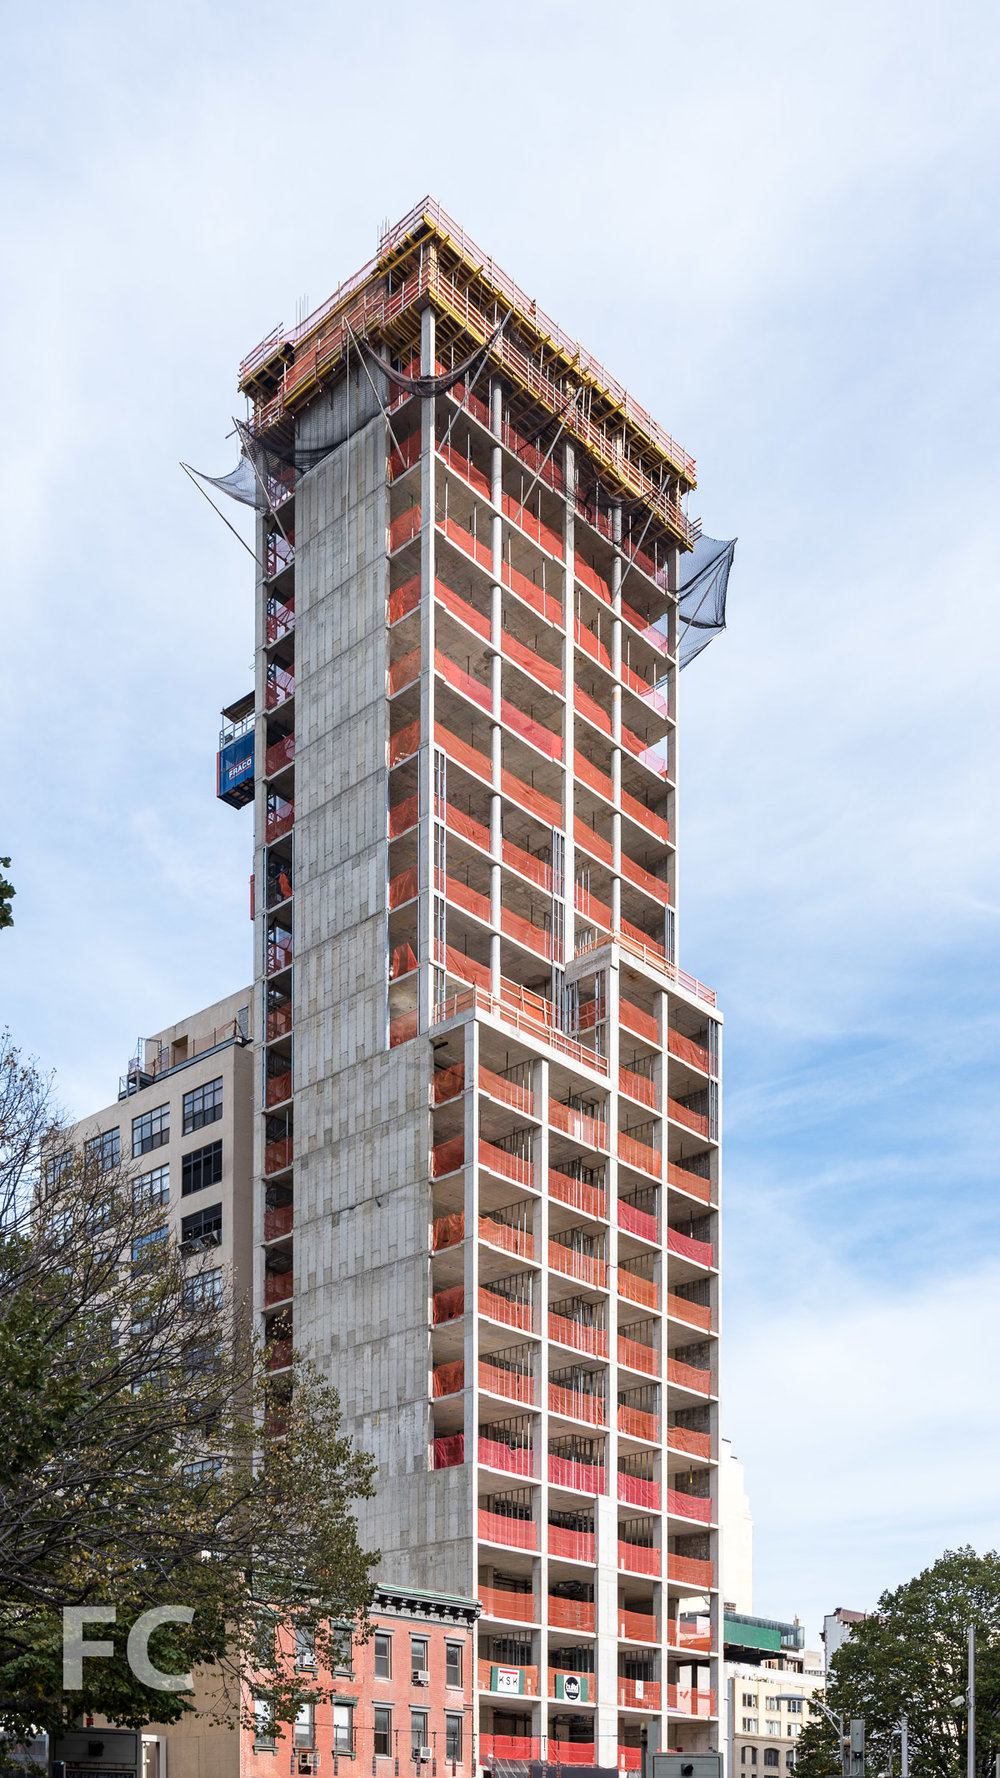 Construction Update: 570 Broome Less Than 1 Year Away From Occupancy As Construction Tops Out In West SoHo